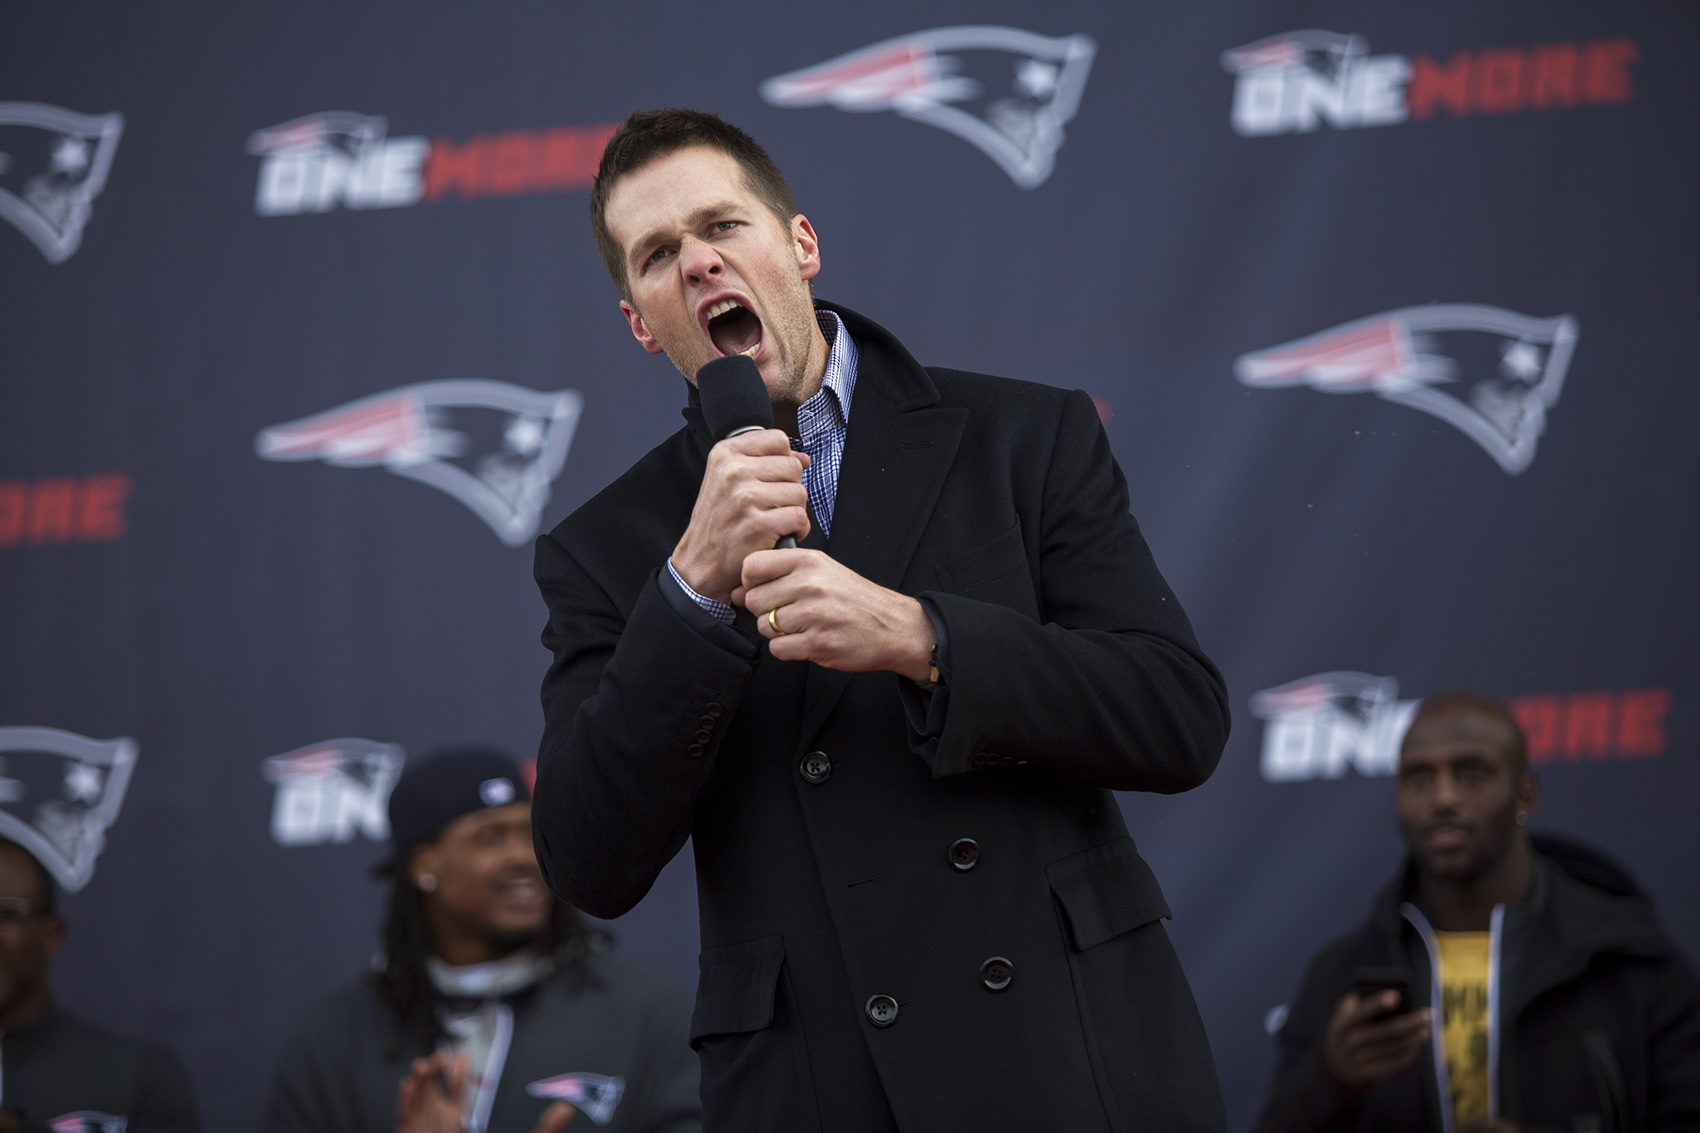 Tom Brady pumps up the crowd during the Patriots' Super Bowl sendoff in Foxborough. (Jesse Costa/WBUR)